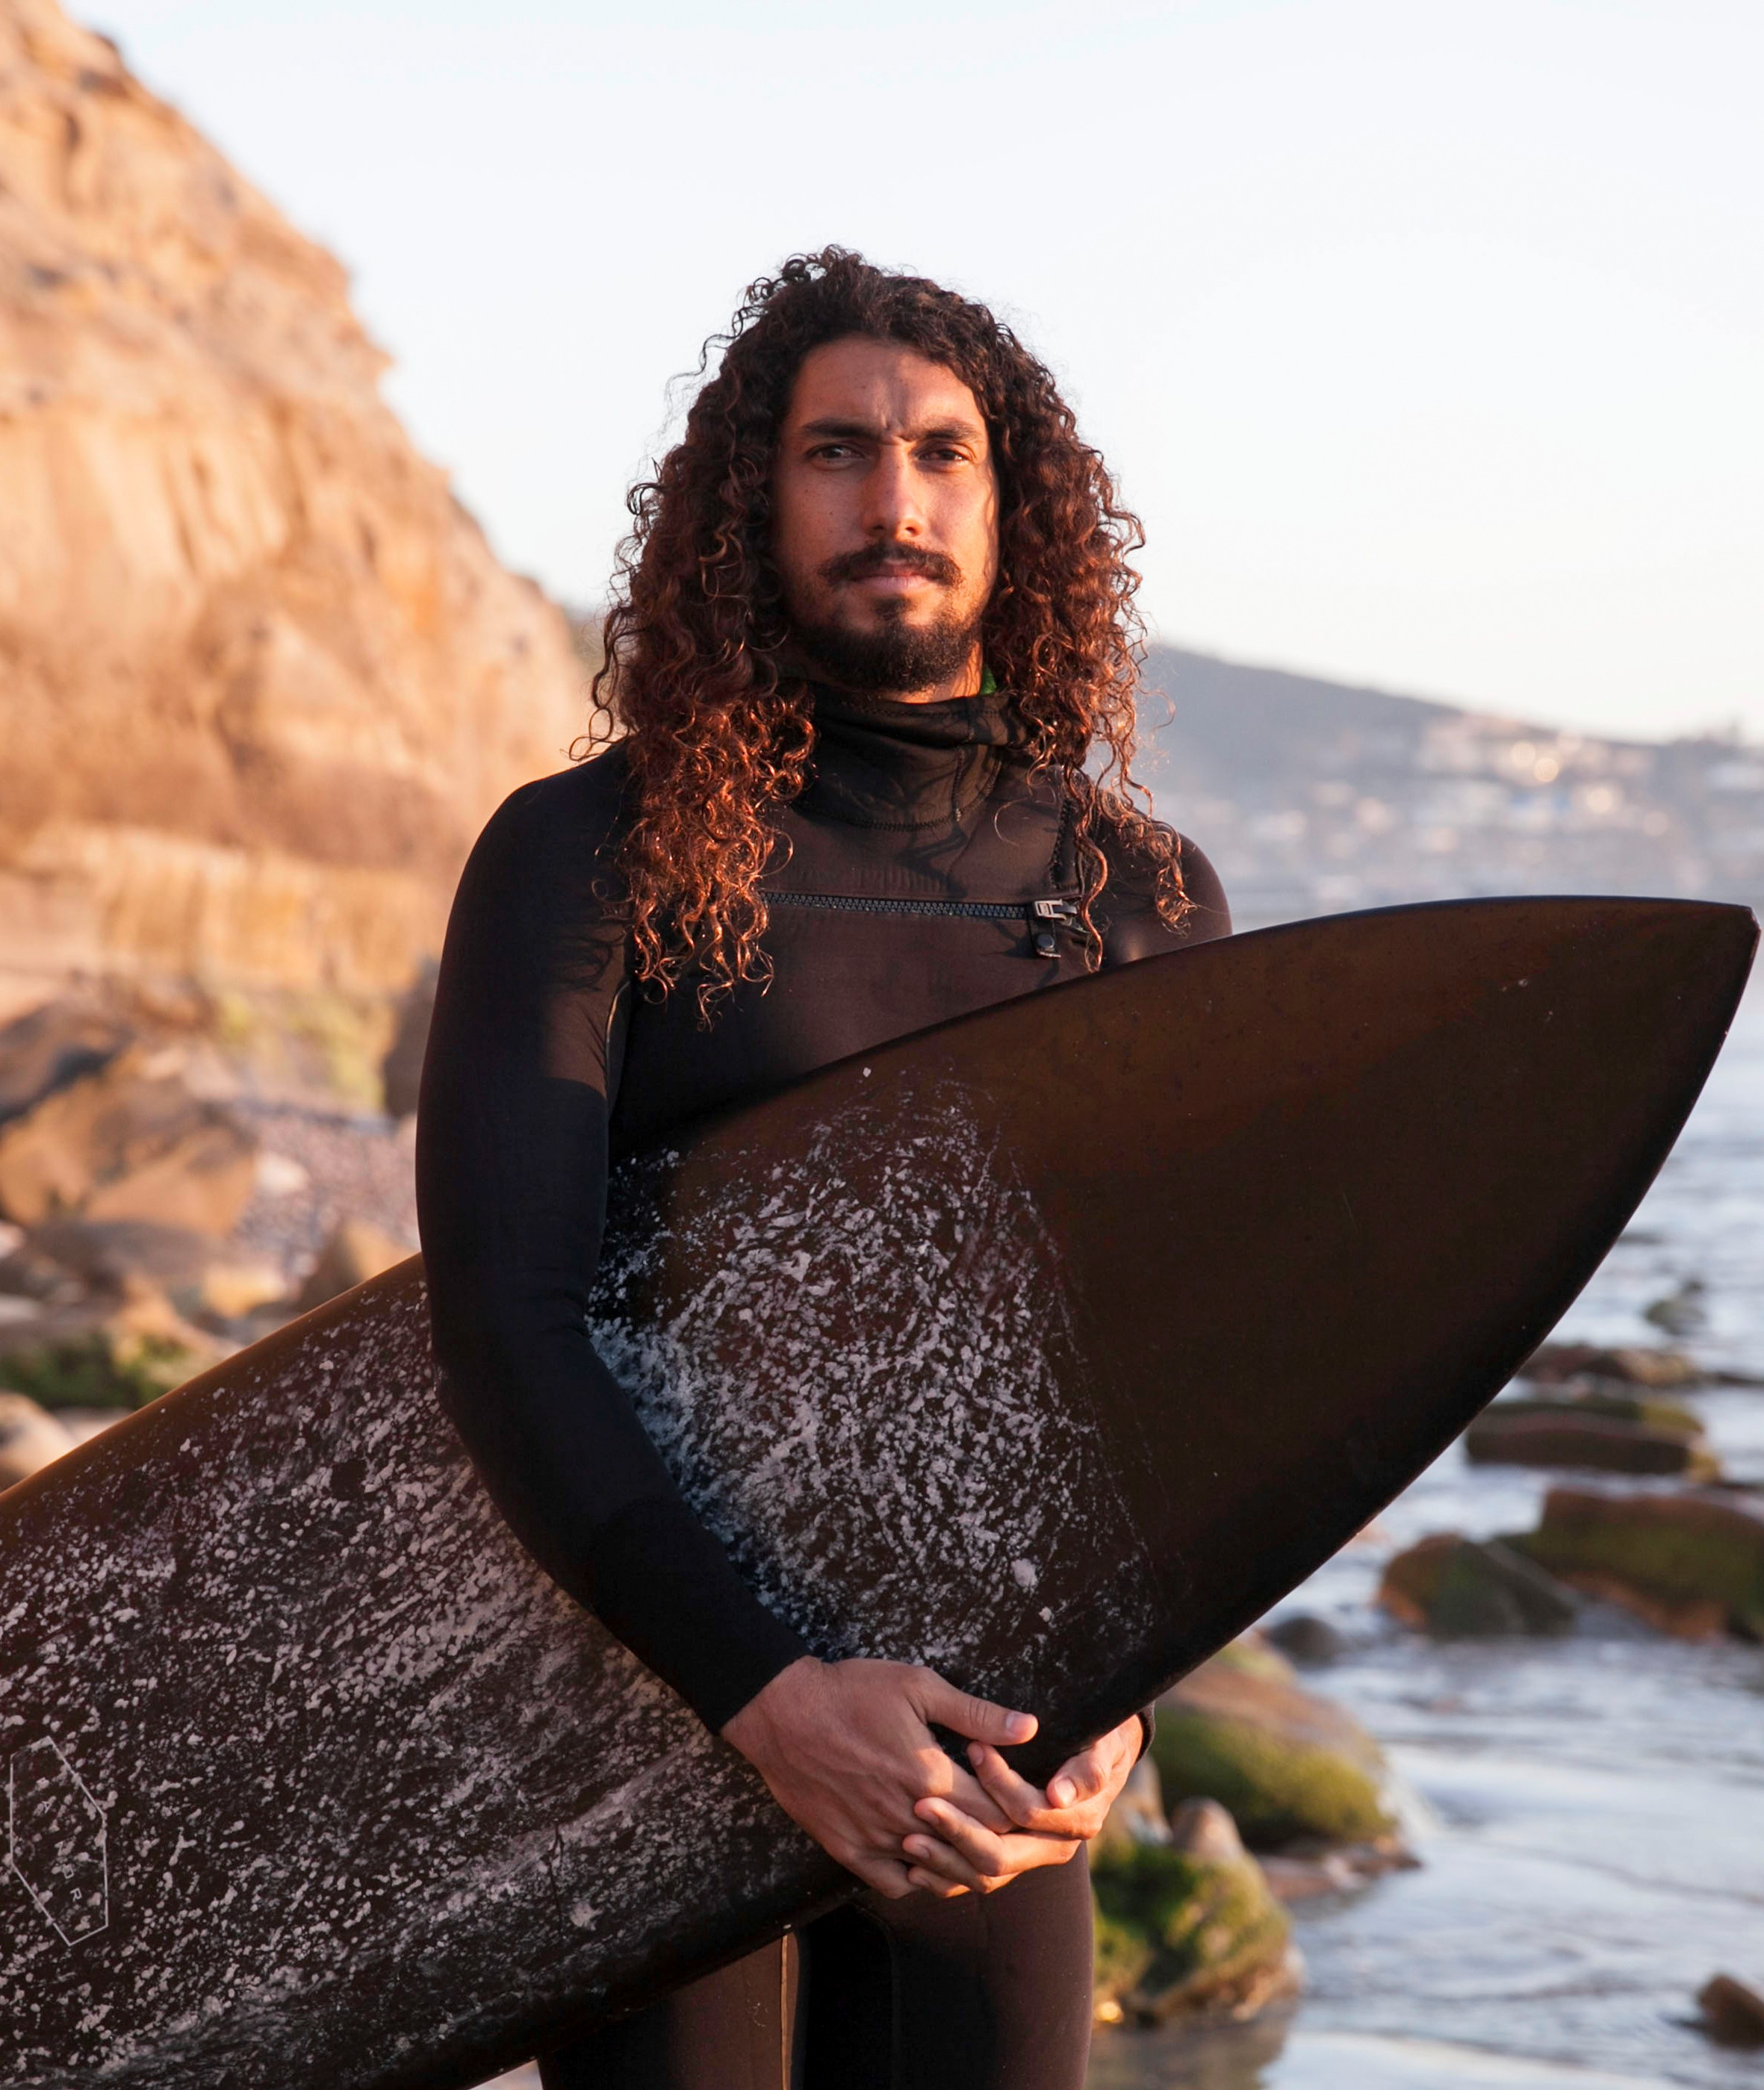 Cliff Kapono standing with surf board